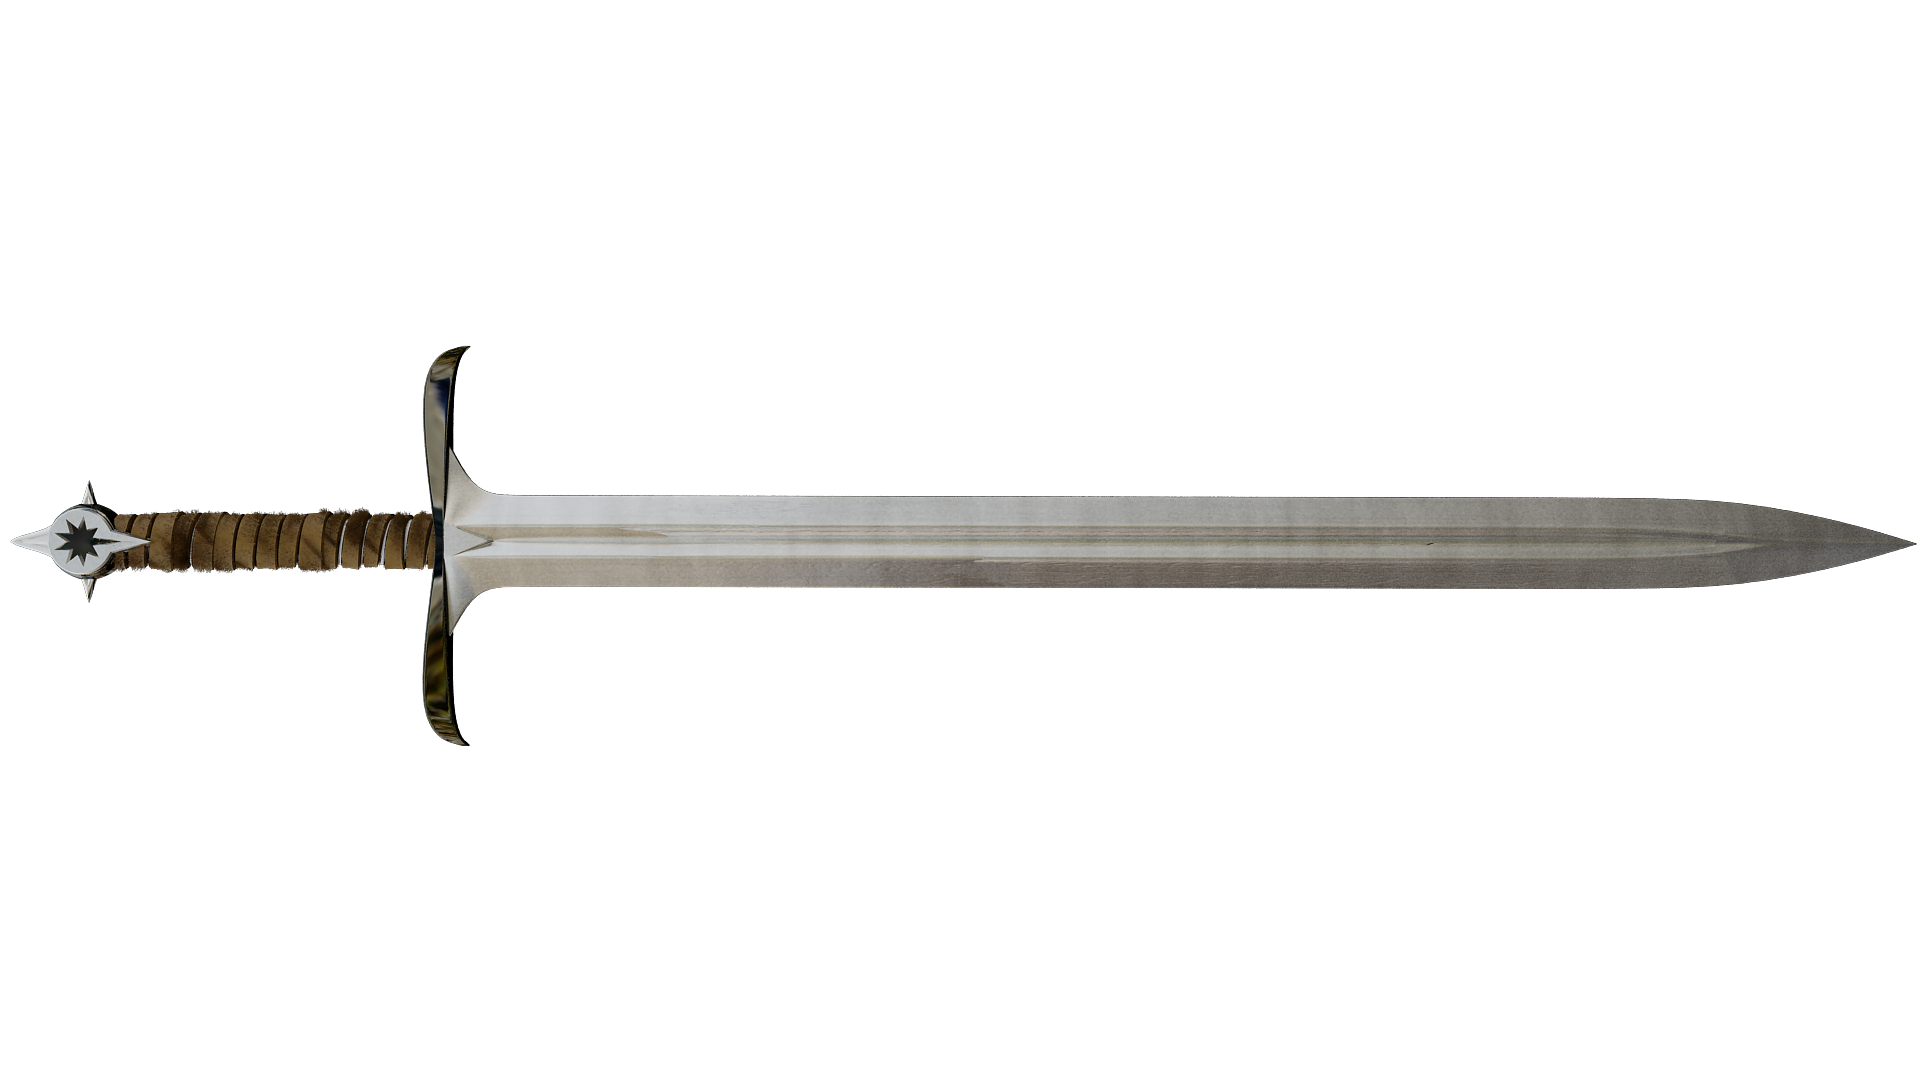 Elysion RPG - Terre de Tiamaranta Sword-hd-png-sword-png-image-1920